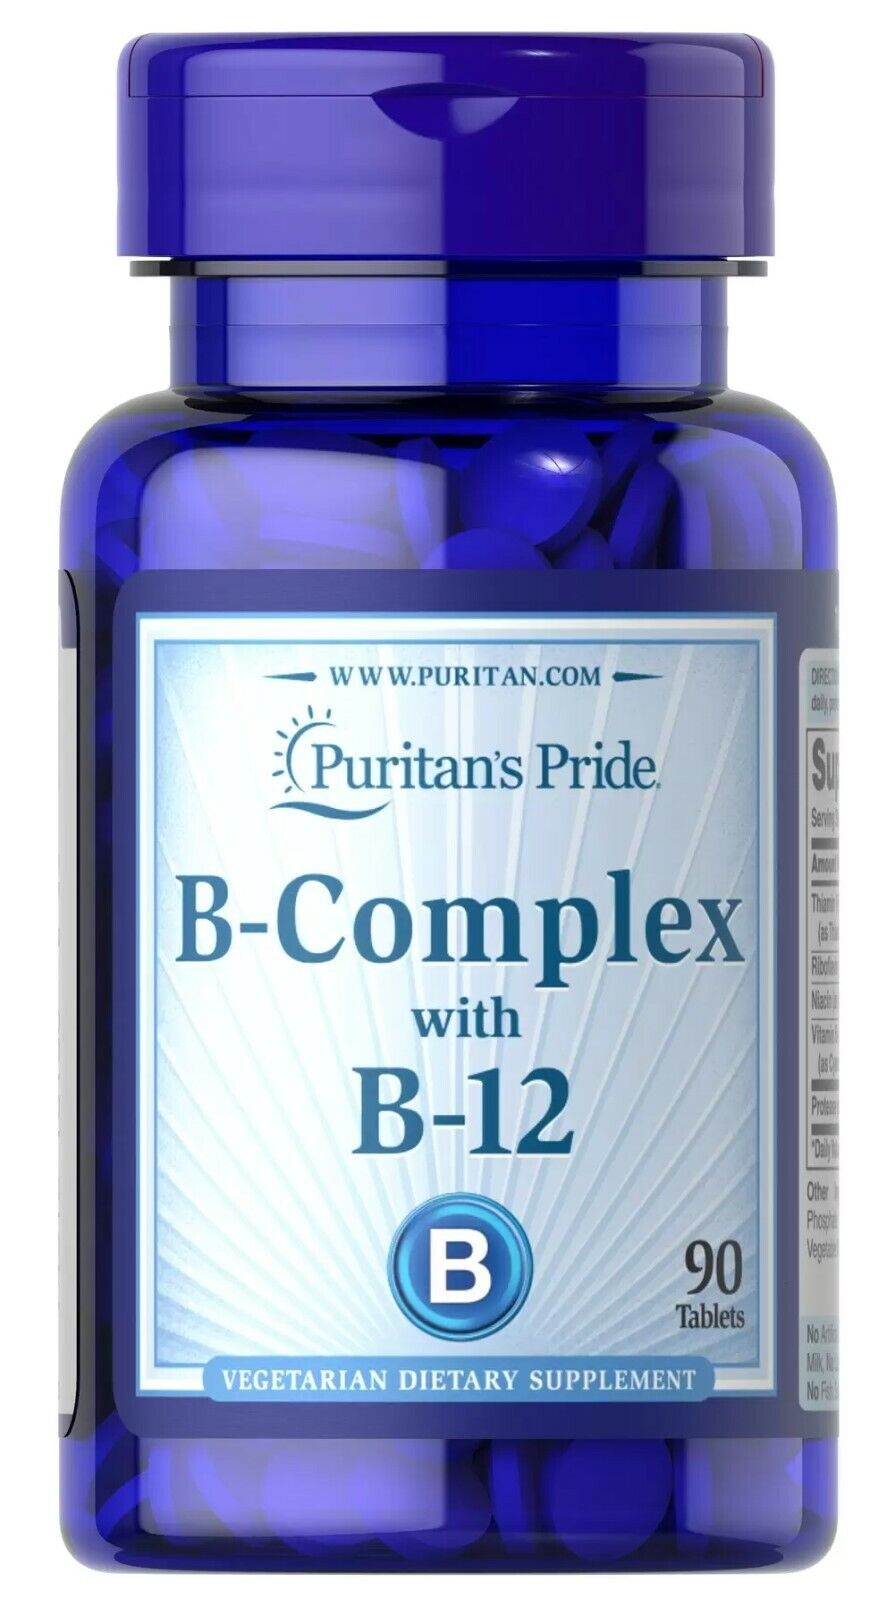 Puritan's Pride Vitamin B-Complex and Vitamin B-12 90 Tablets